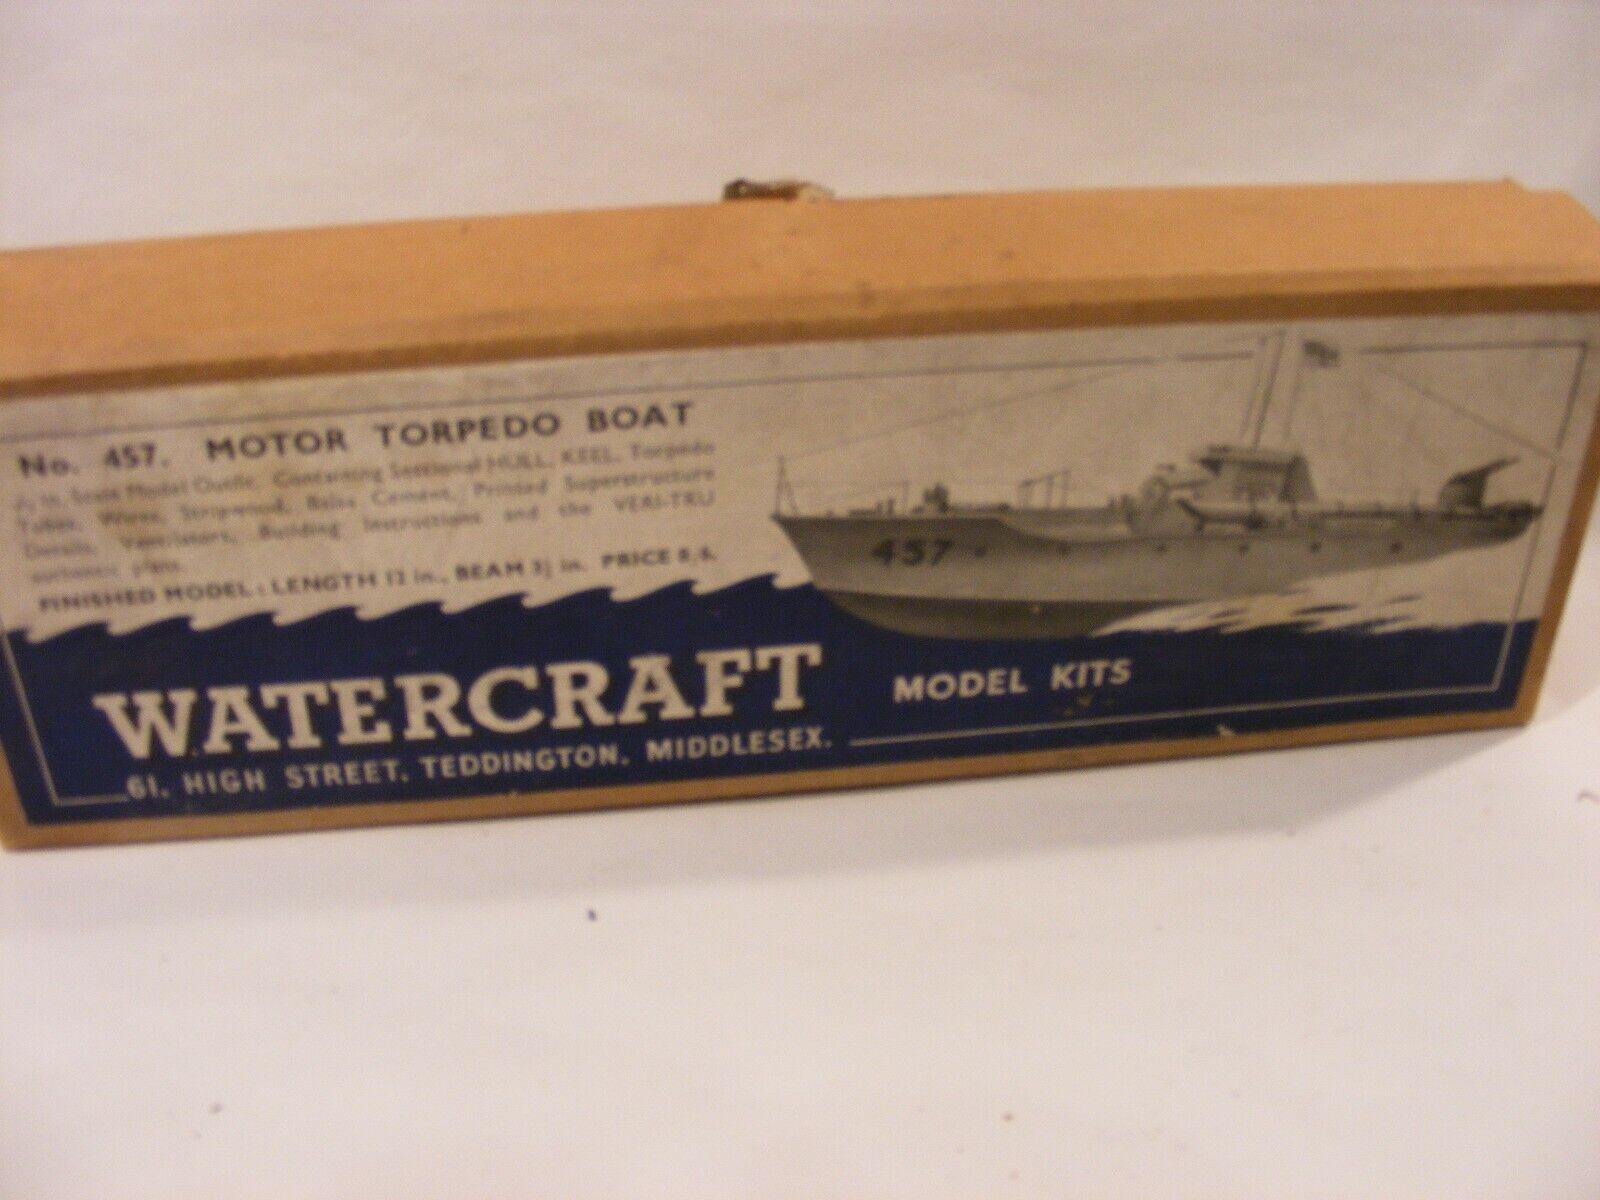 VINTAGE WATERCRAFT MOTOR TORPEDO BOAT WOODEN KIT  No457